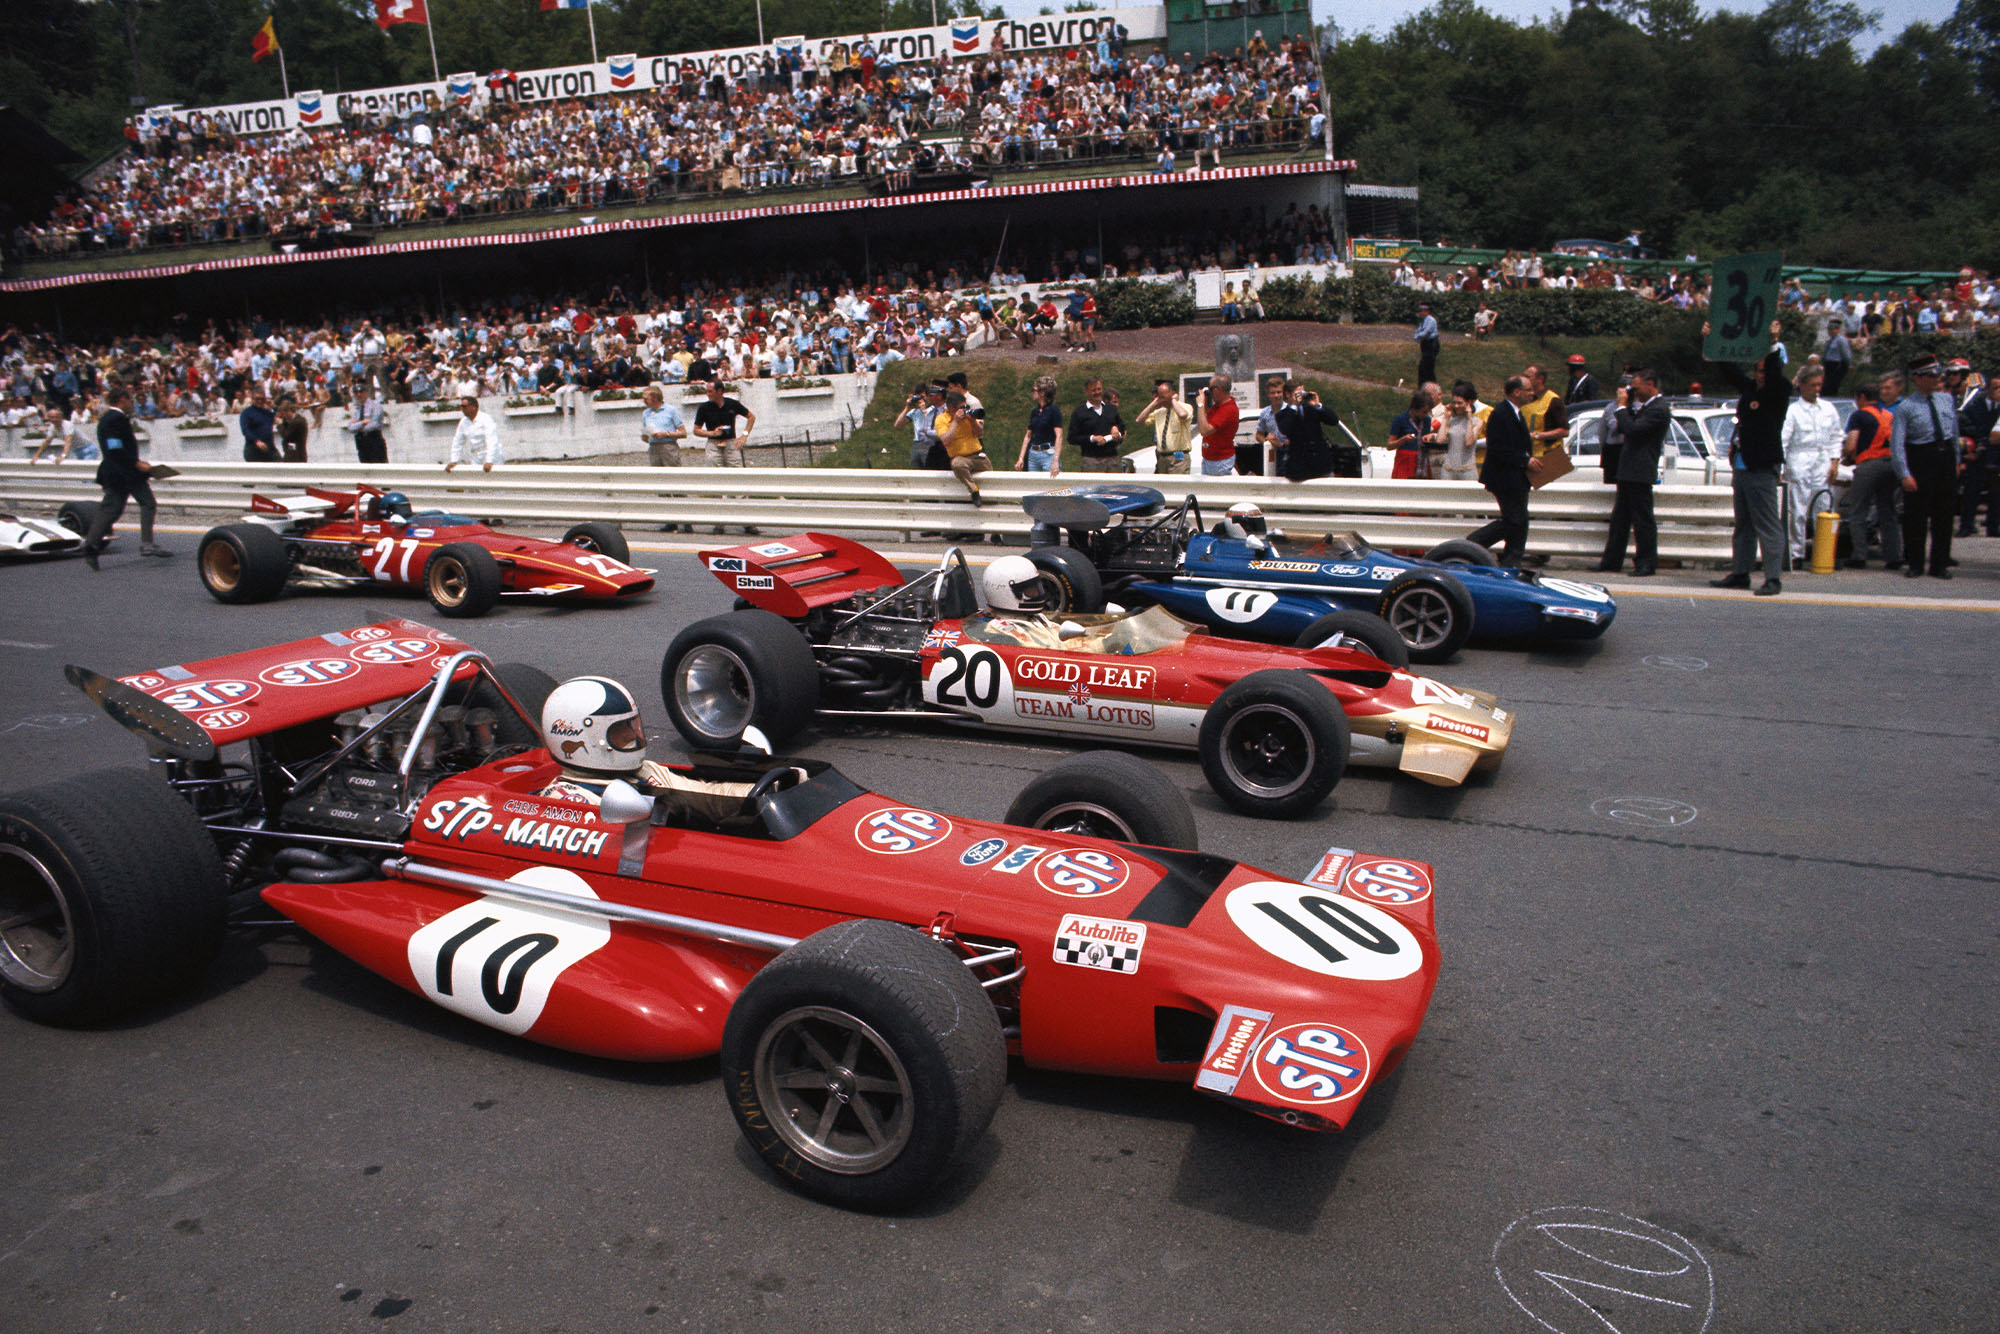 The cars line up on the starting grid of the 1970 Belgian Grand Prix